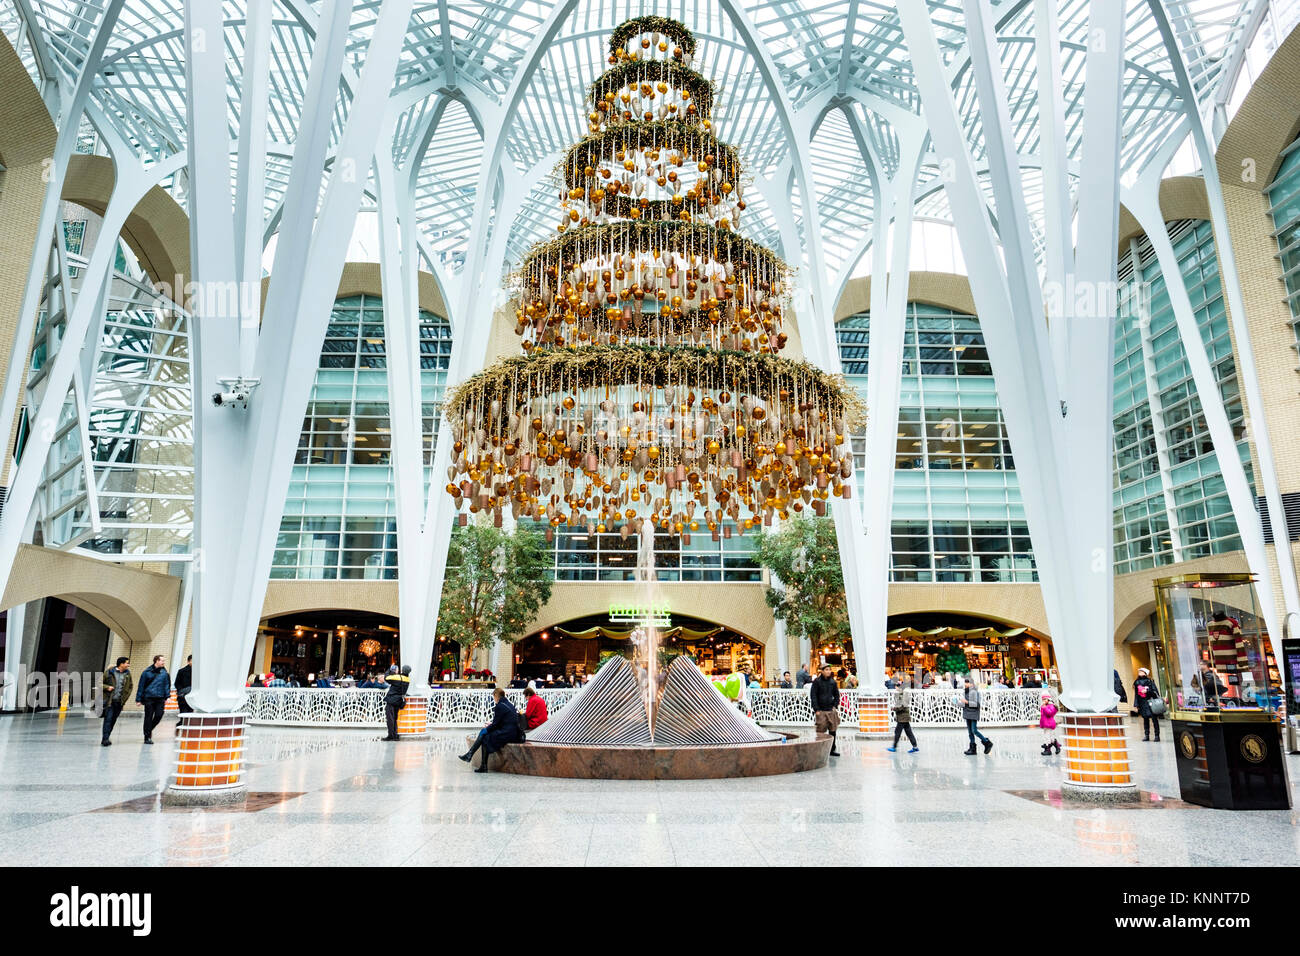 Brookfield Place (formely BCE Place) Santiago Calatrava's Allen Lambert Galleria Christmas decorations, downtown - Stock Image